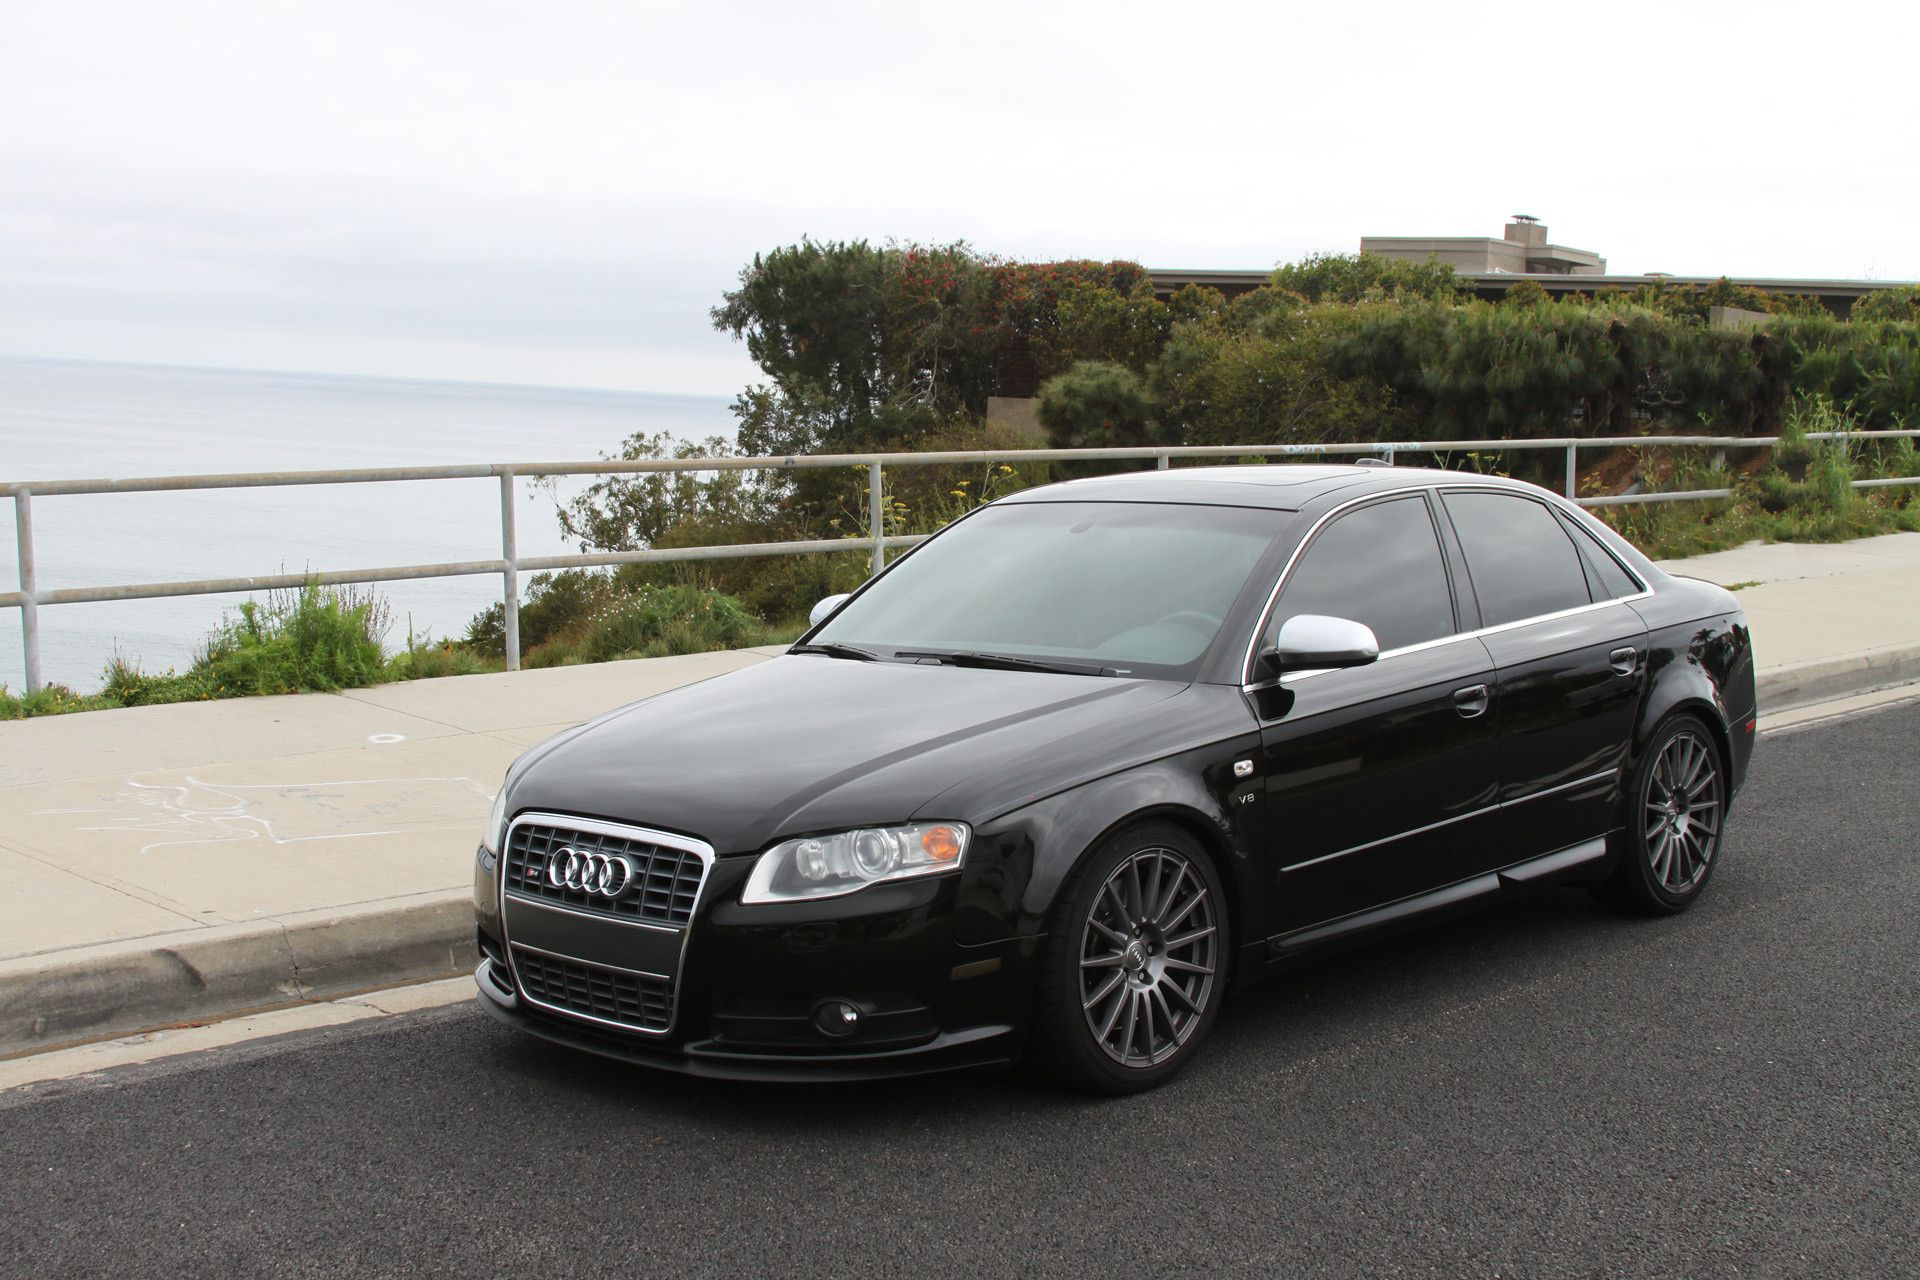 Best 25 Audi a4 b7 ideas on Pinterest  Audi rs6 wagon Audi